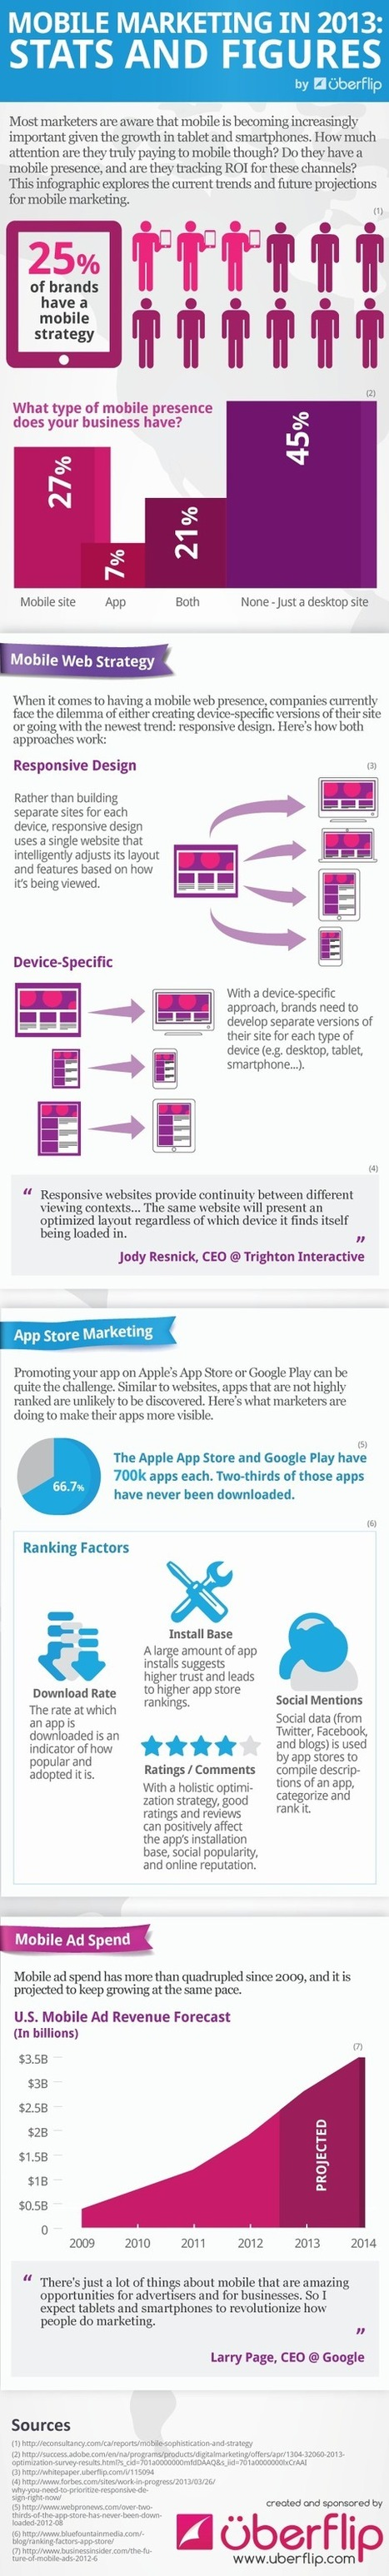 Infographic: 2013 Mobile Marketing Stats and Figures | Real Estate Trends and Finding your Dream home | Scoop.it